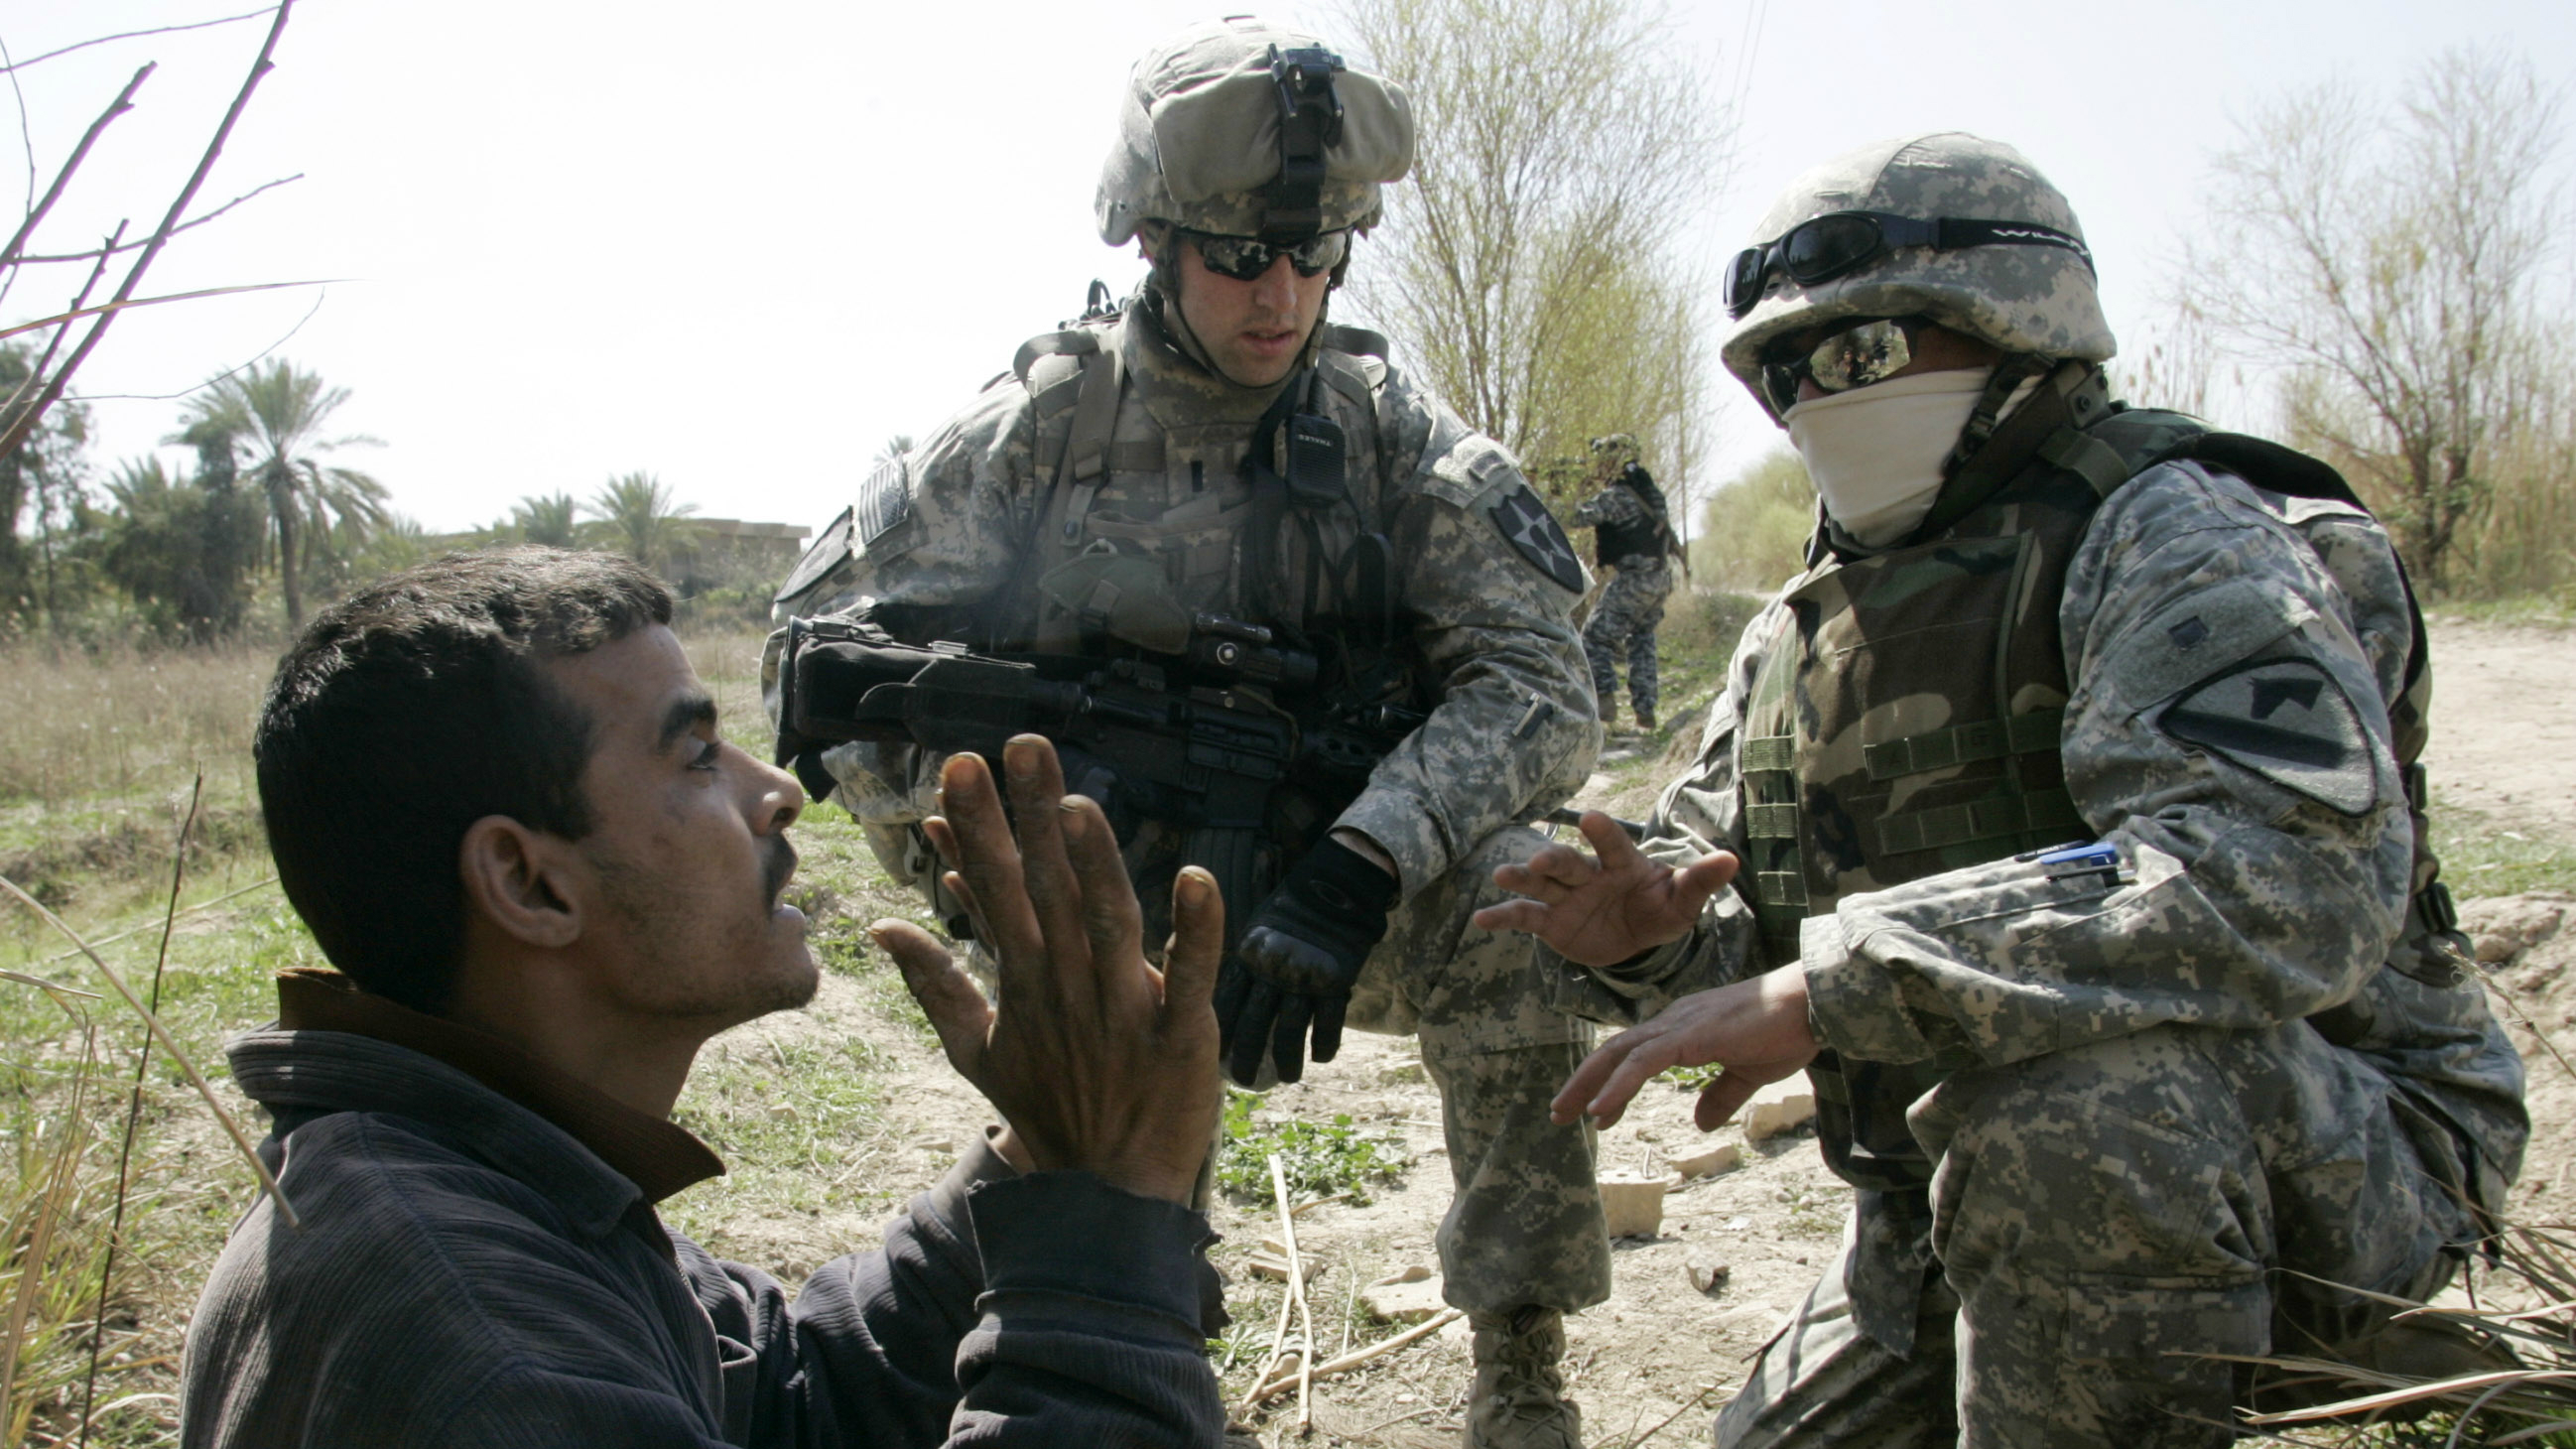 Tom kennedy us army claims service - A Us Soldier Of The 2nd Platoon Charlie Troop 3rd Squadron Of 61st Cavalry Regiment Questions A Man With An Interpreter R While On Patrol With Iraqi